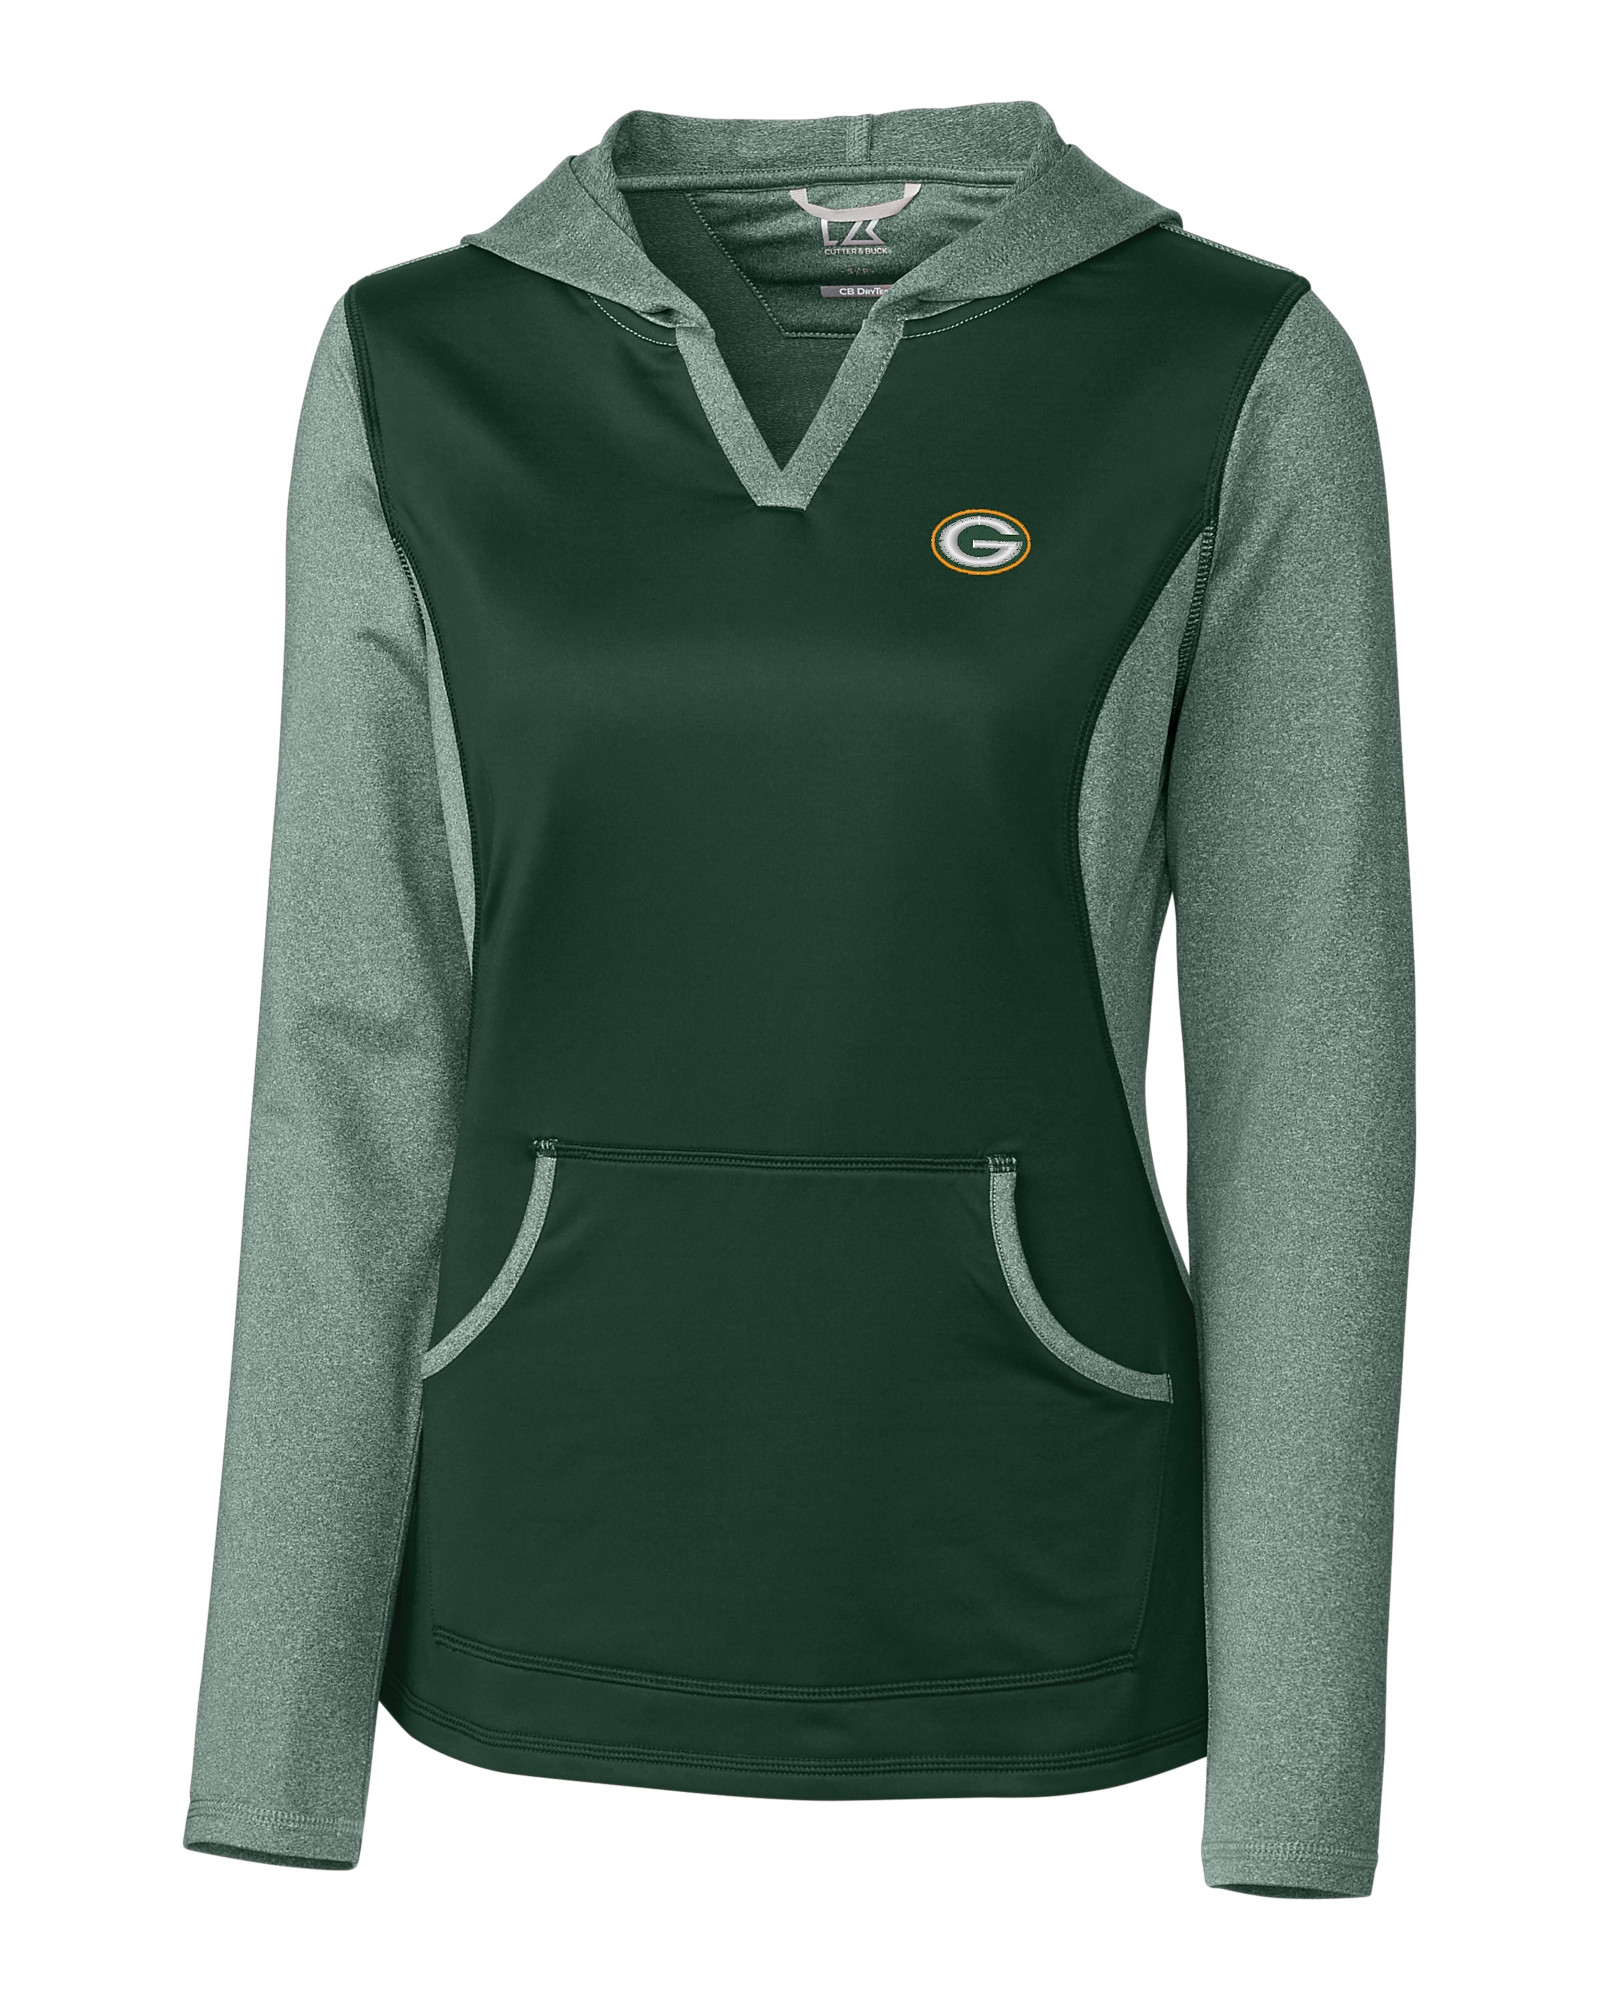 quality design cd83d f1f52 Green Bay Packers Ladies' Tackle Hoodie